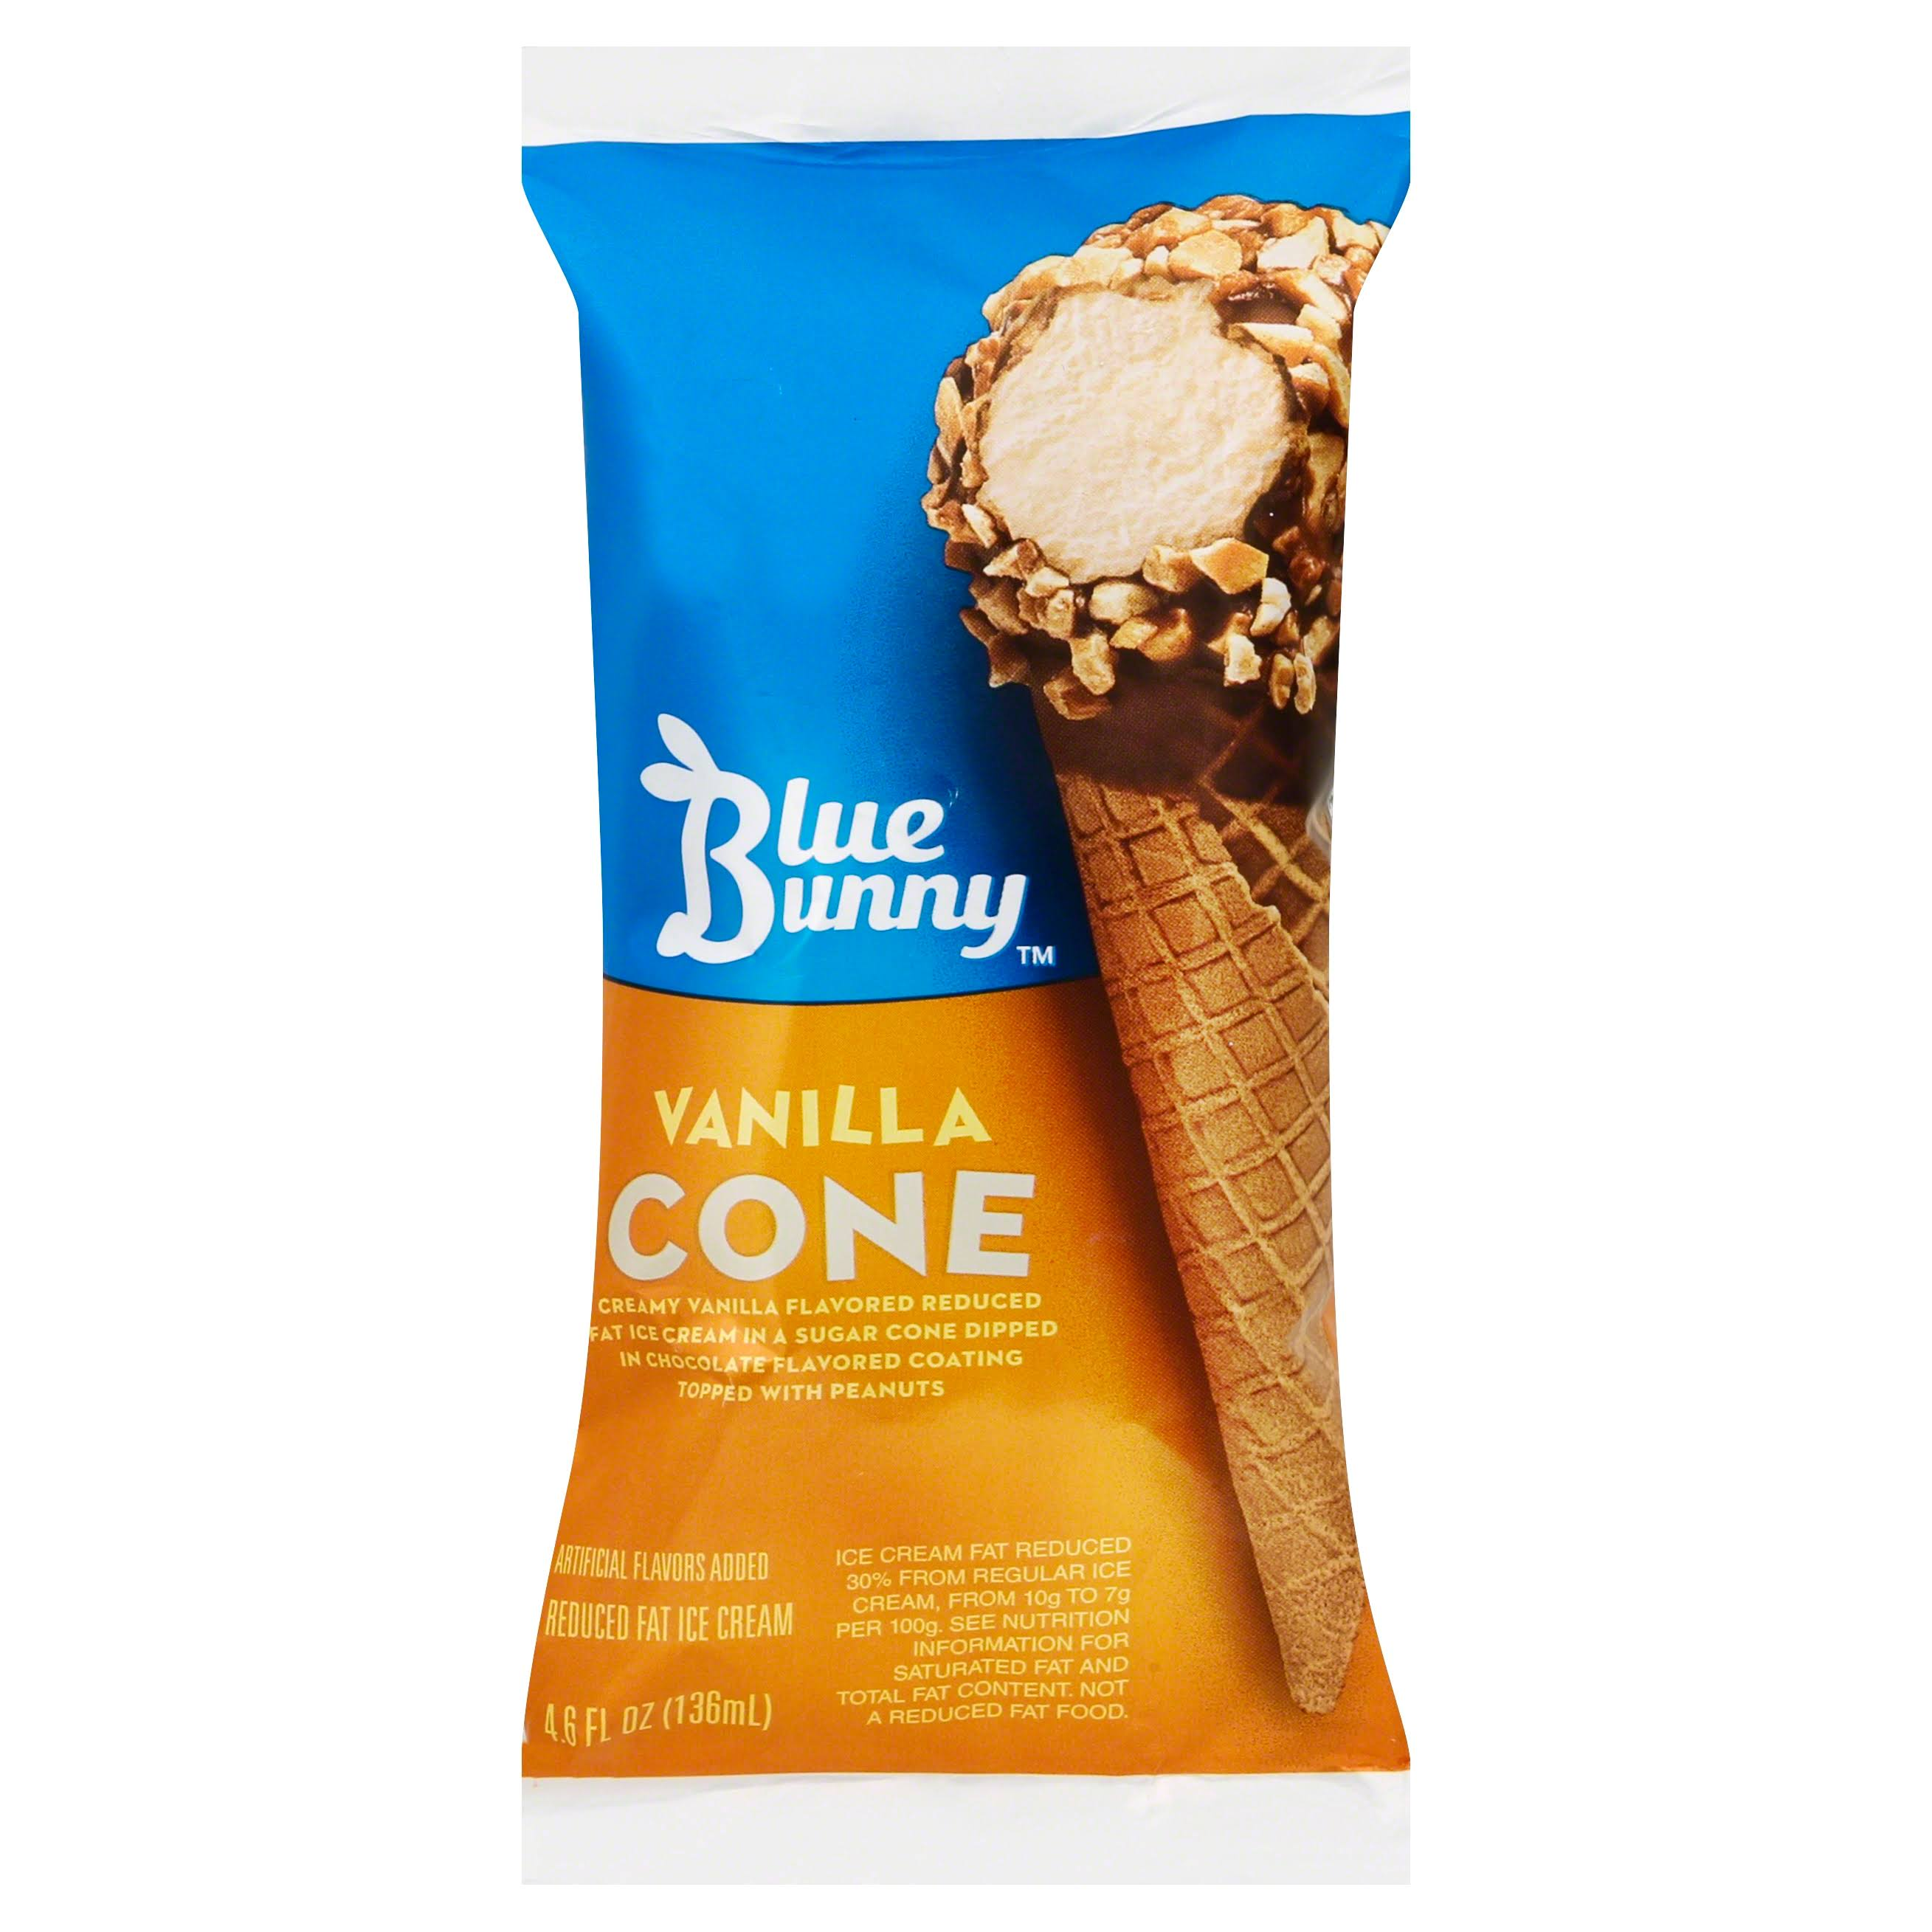 Blue Bunny Ice Cream Cone, Reduced Fat, Vanilla - 4.6 fl oz